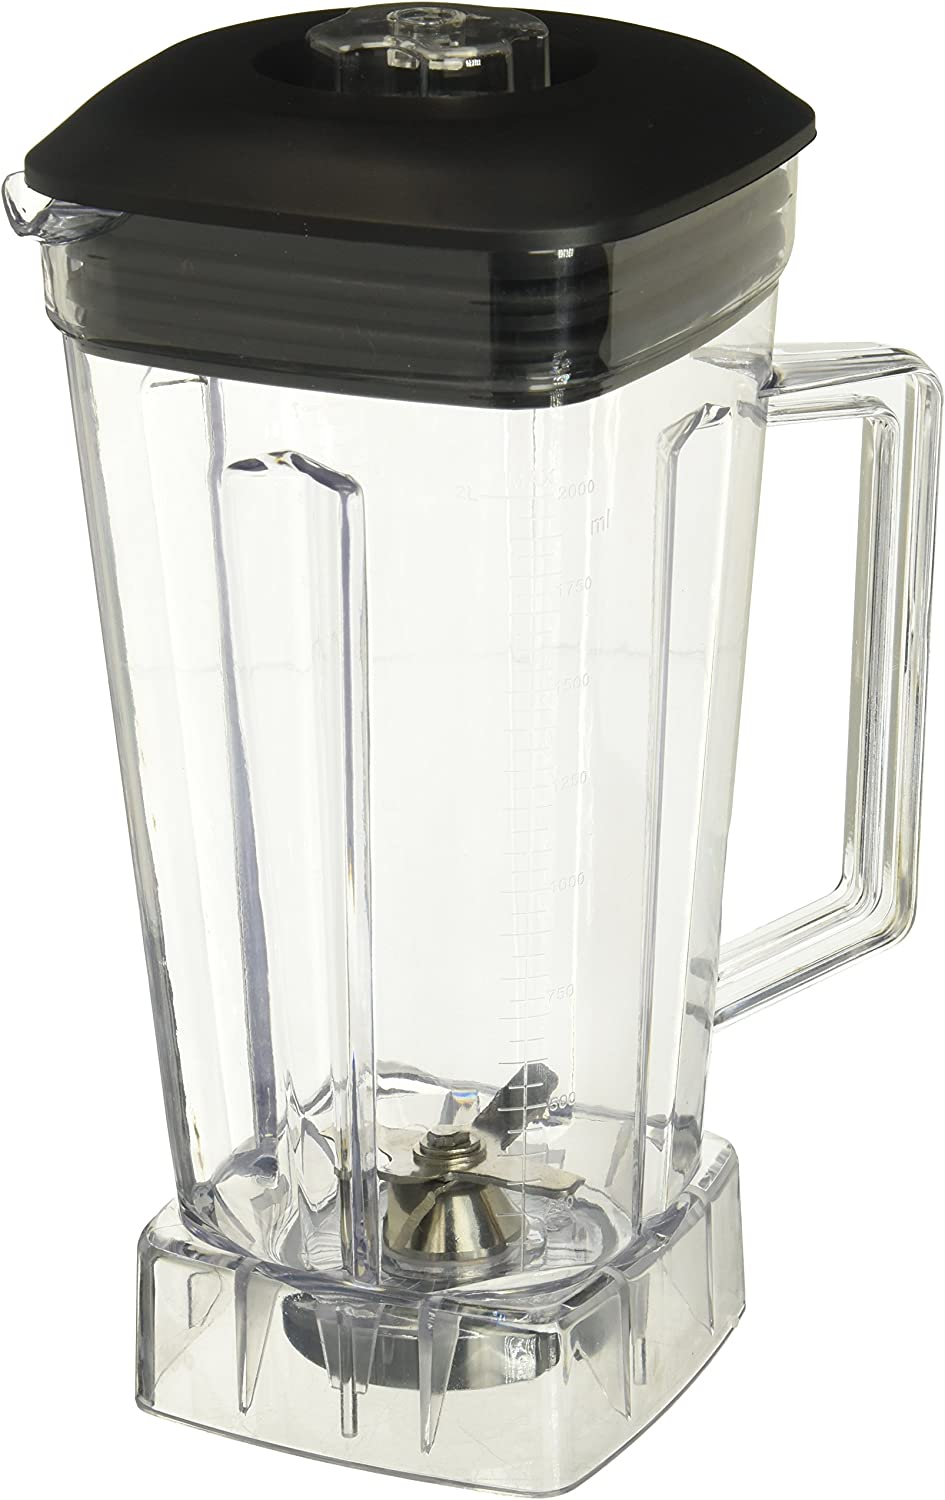 Hardin VMUJUG6 Vita-Mix Replacement 64oz Polycarbonate Container Jug with Top Cover, 6 Blade Leaf, Socket & Hex Key